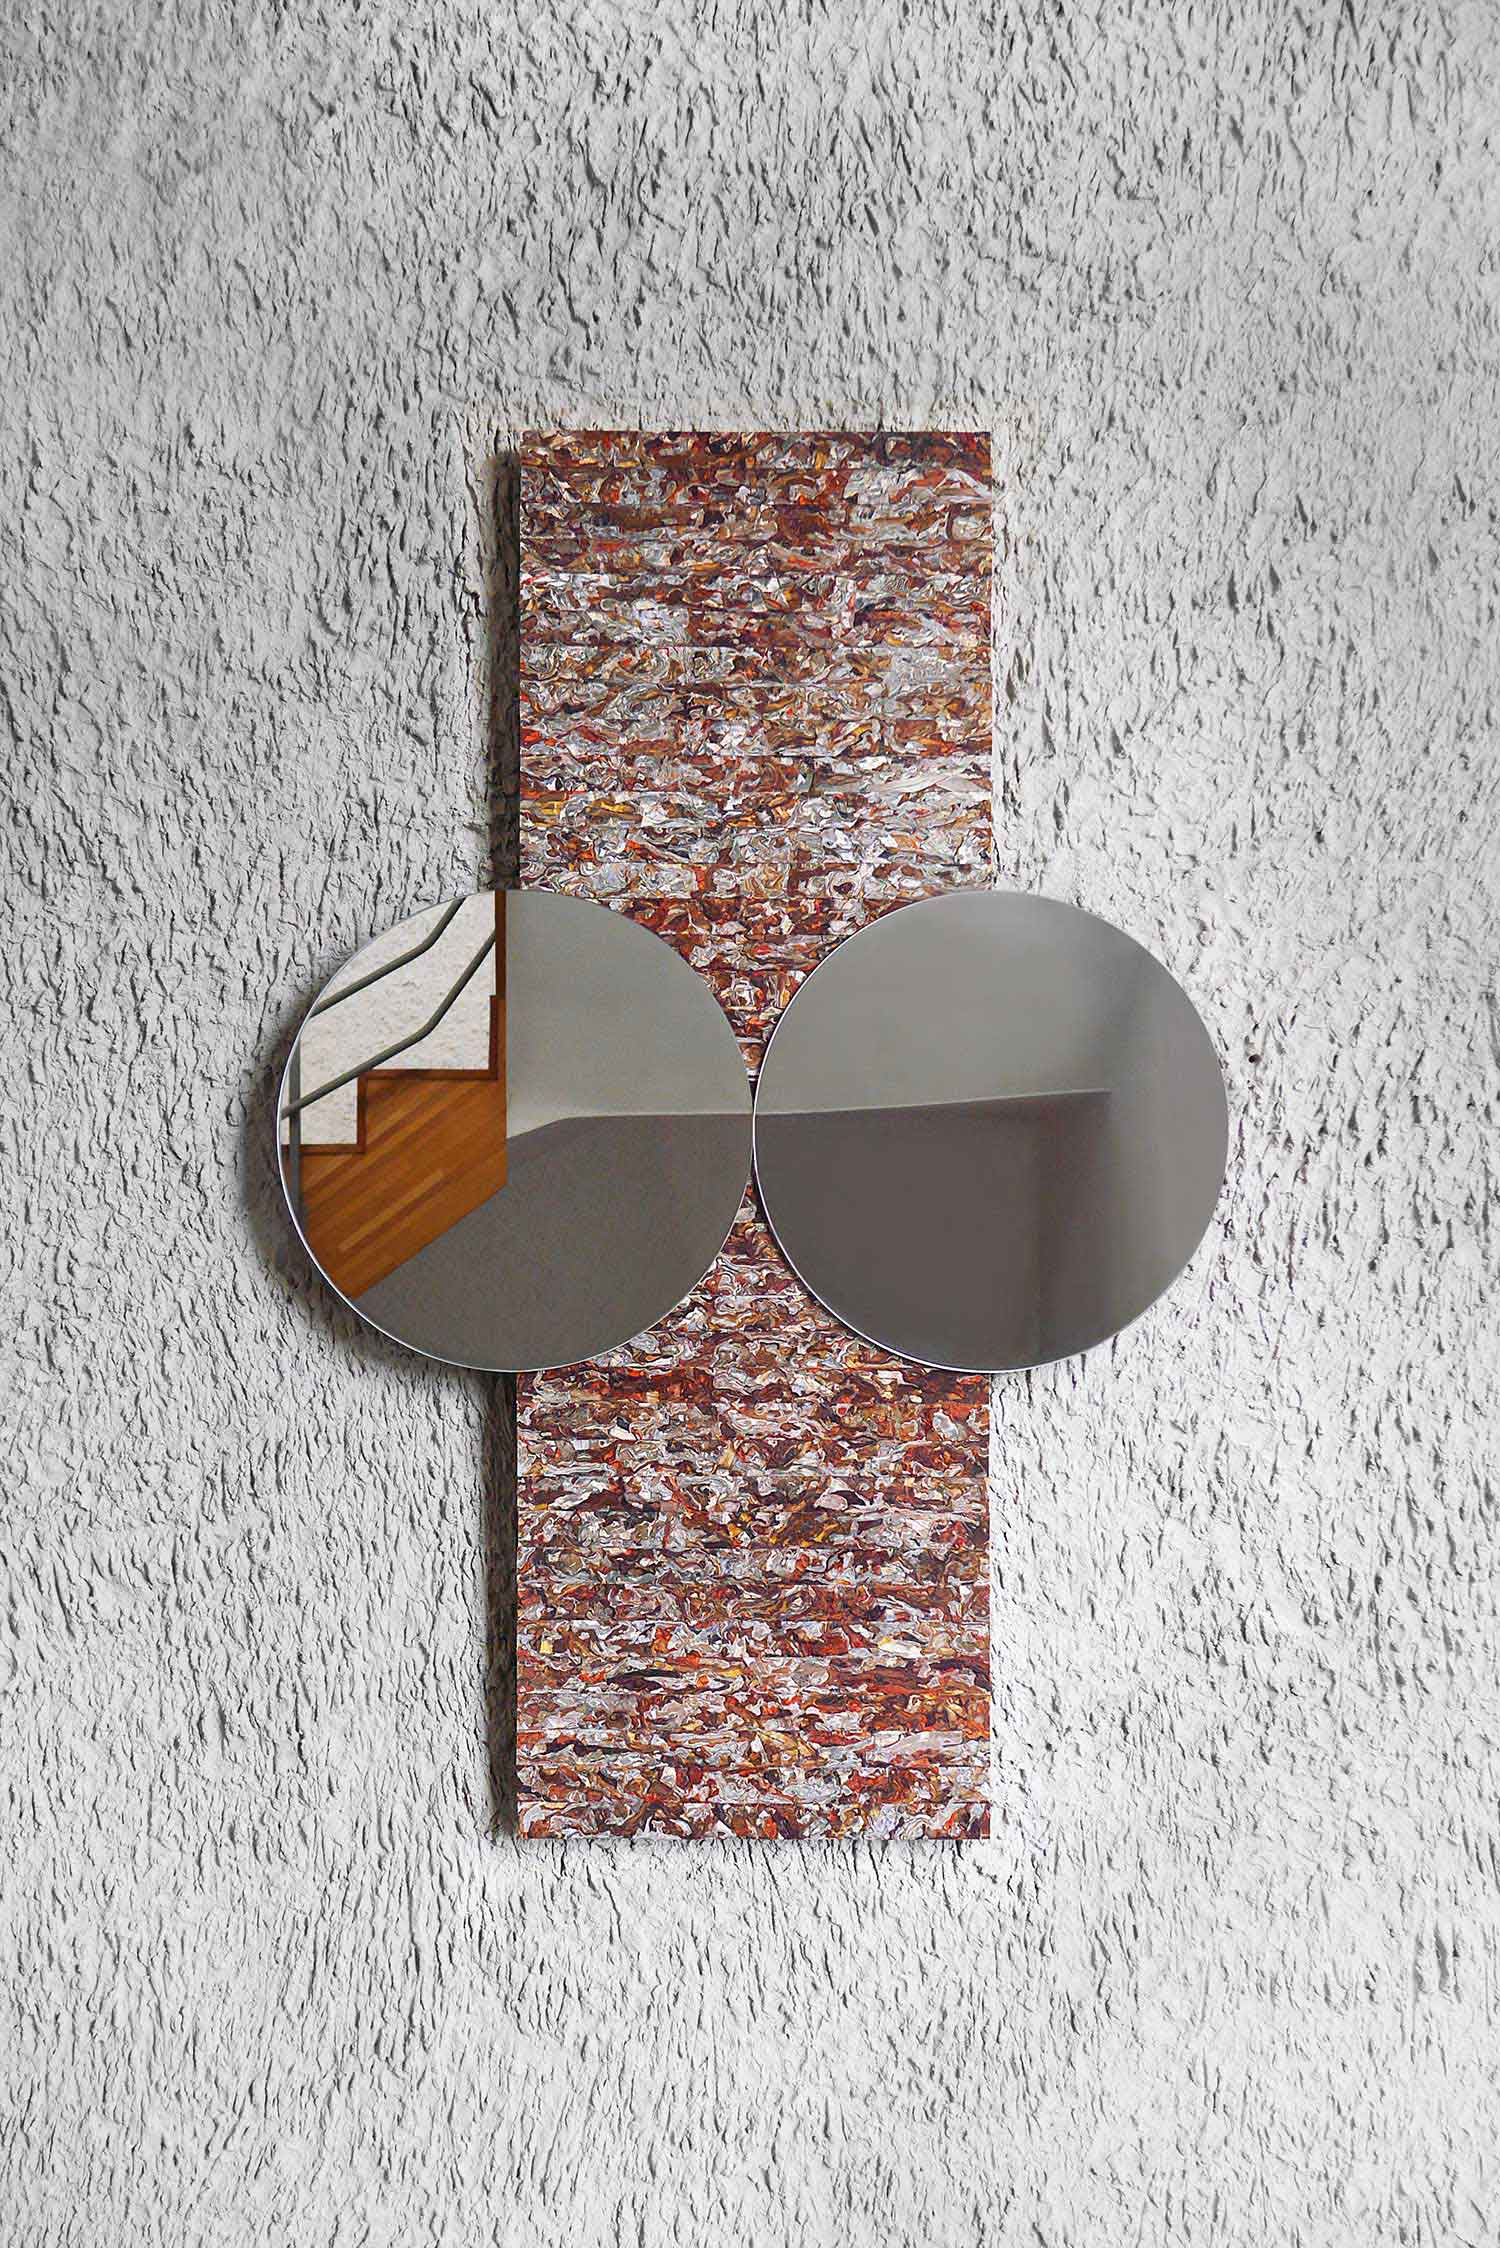 Structural Skin Mirror by Jorge Penadés | Yellowtrace